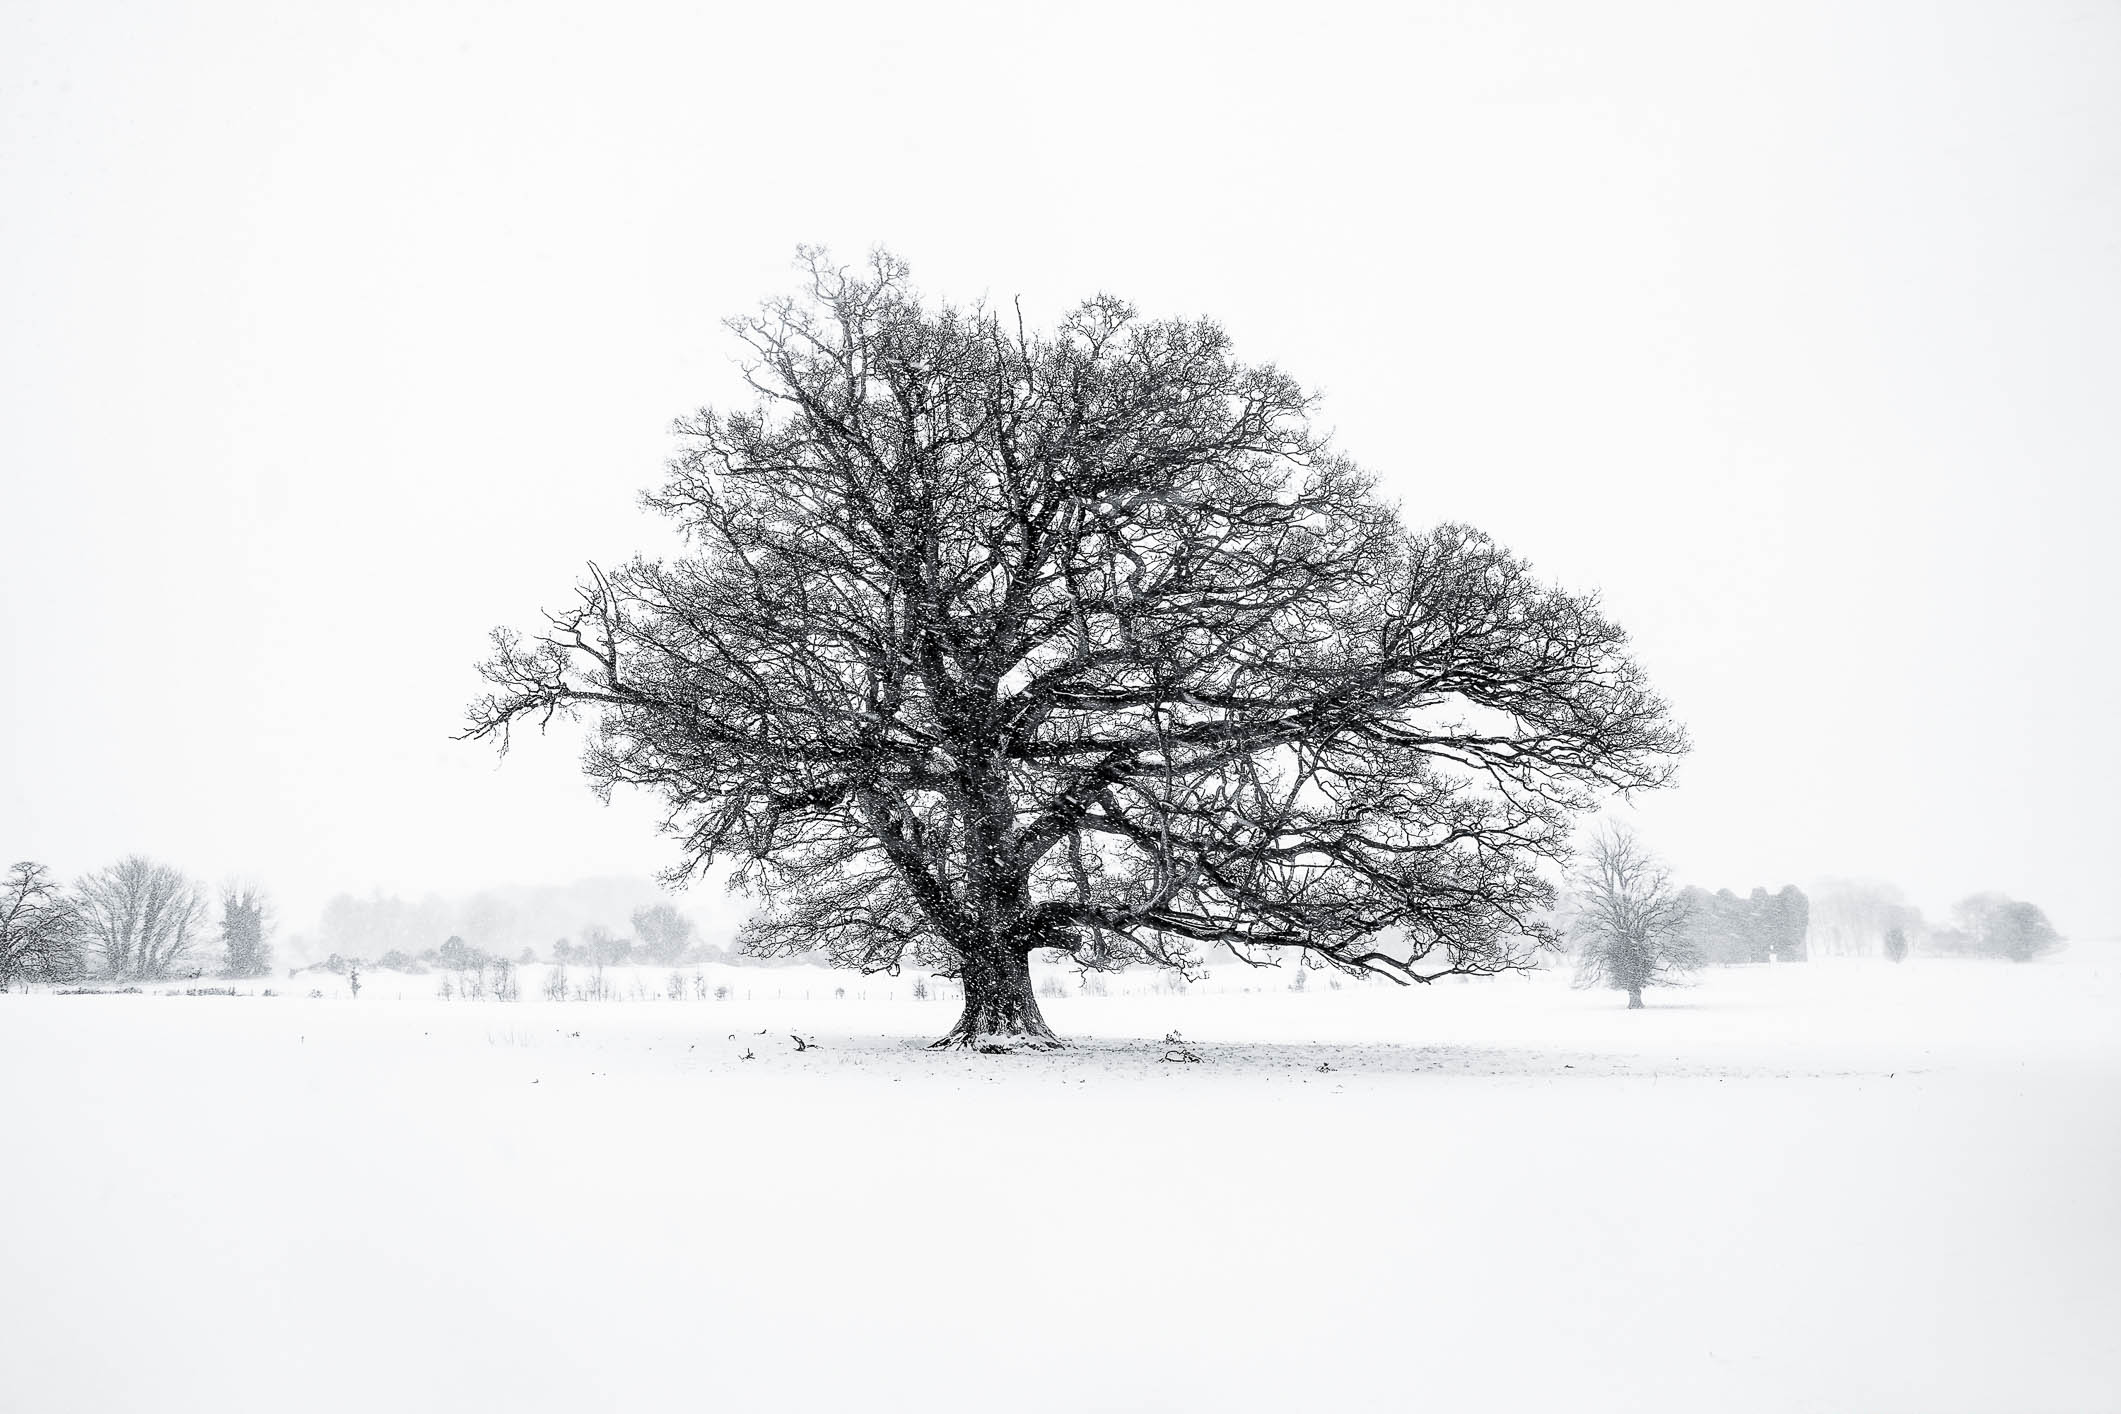 The Giant Tree in Snow.jpg